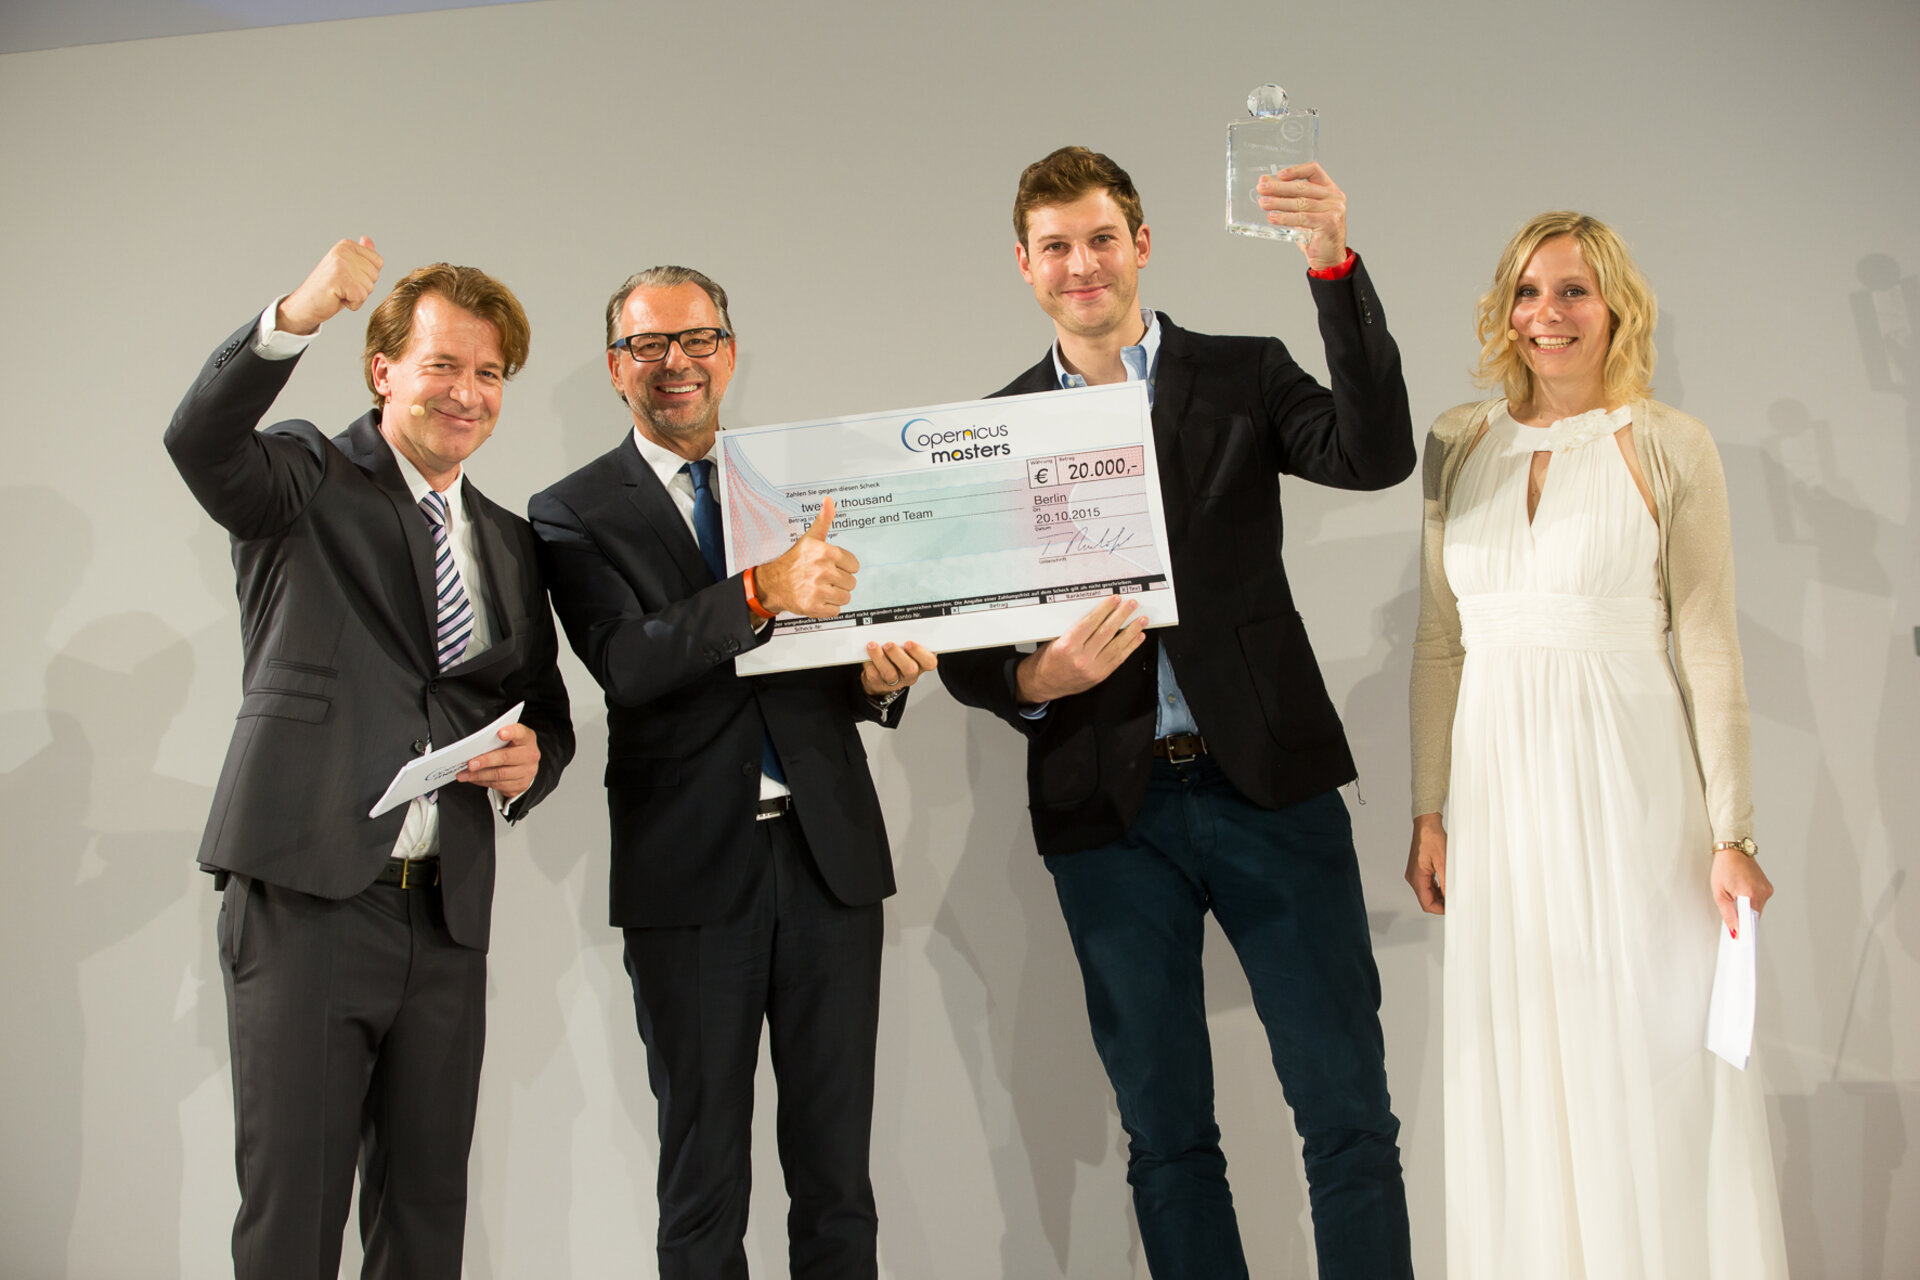 2015 Copernicus Masters first prize